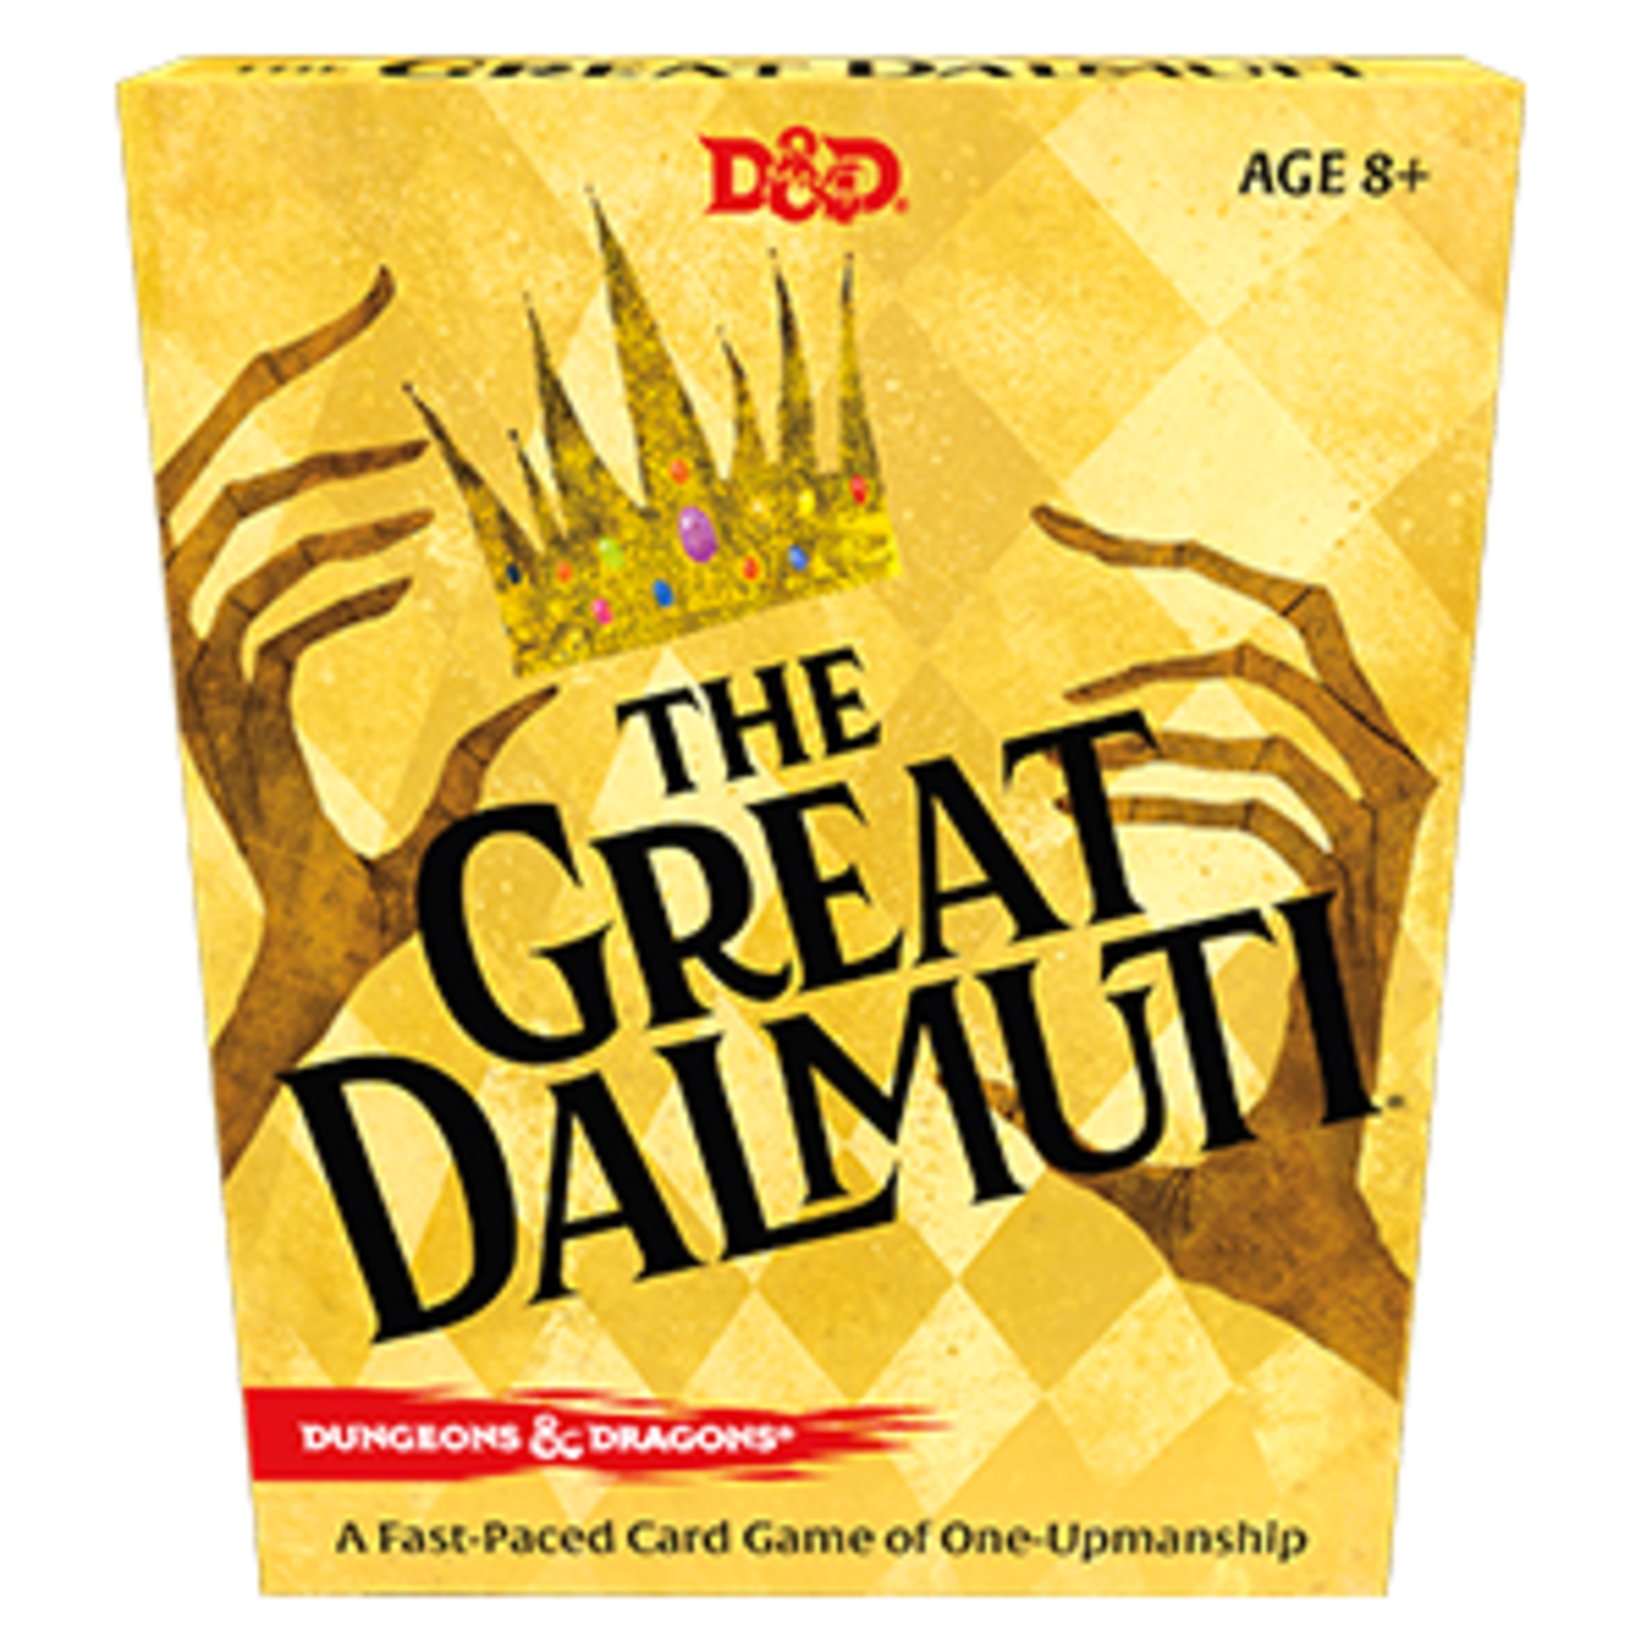 Wizards of the Coast D&D Great Dalmuti